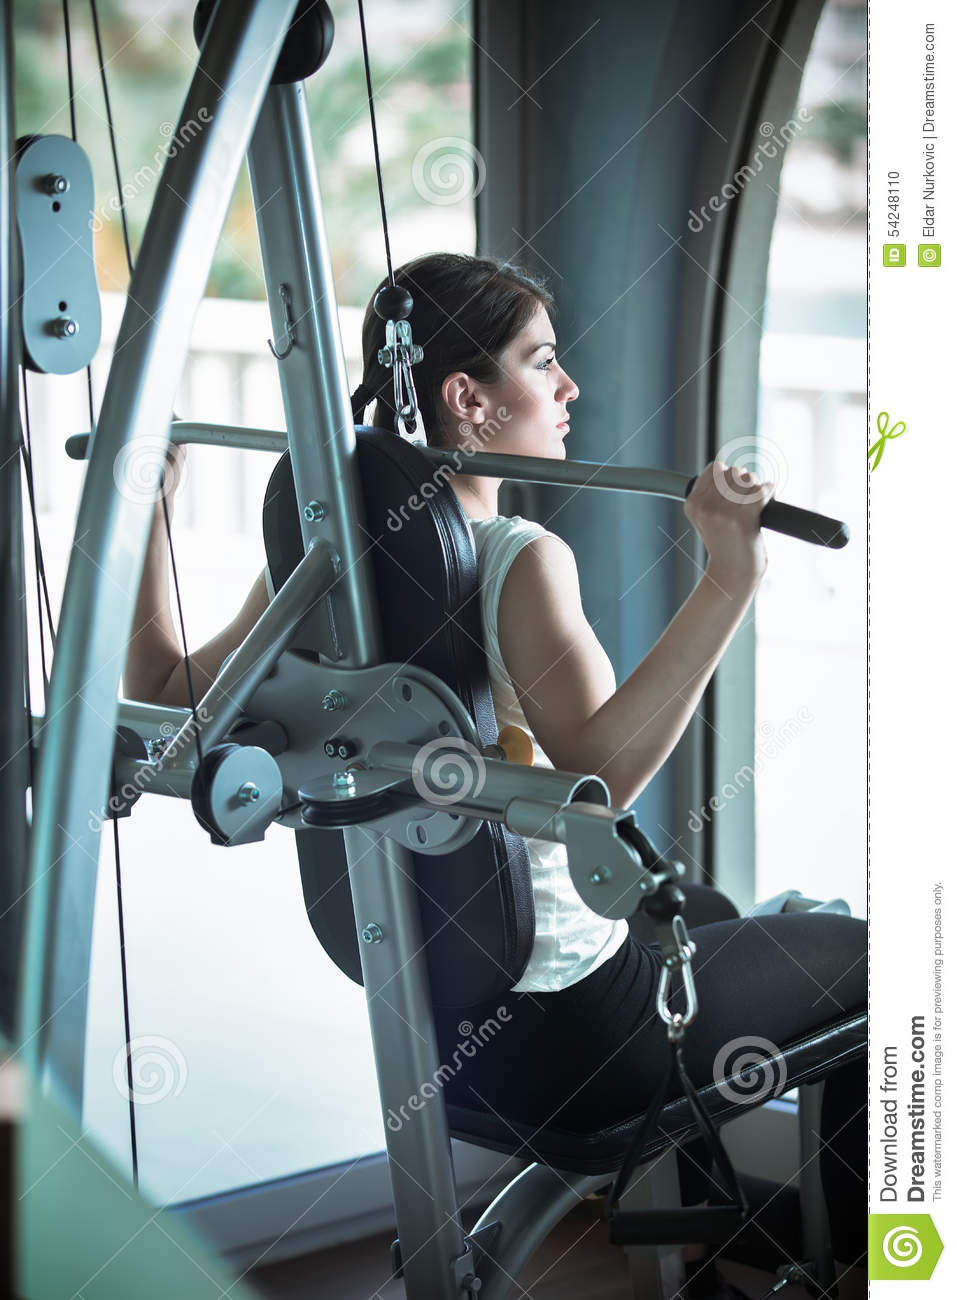 Woman weight training at gym.Exercising on pull down weight machine.Woman doing pull-ups exercising lifting dumbbells.Cardio and